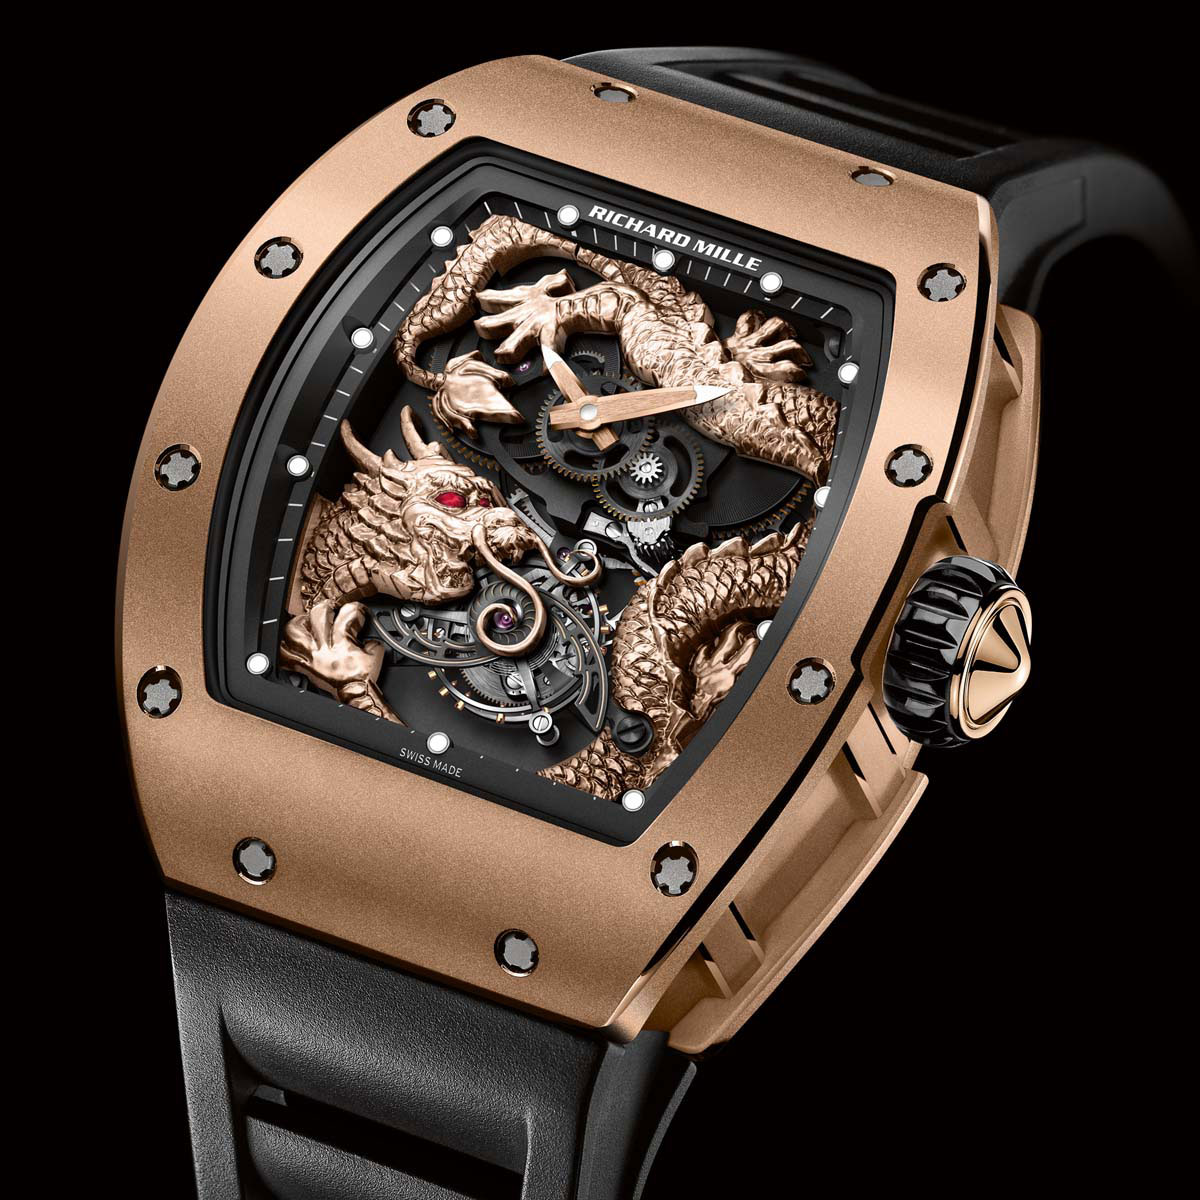 Limited Edition Richard Mille RM 057 Dragon Jackie Chan Watch EXtravaganzi